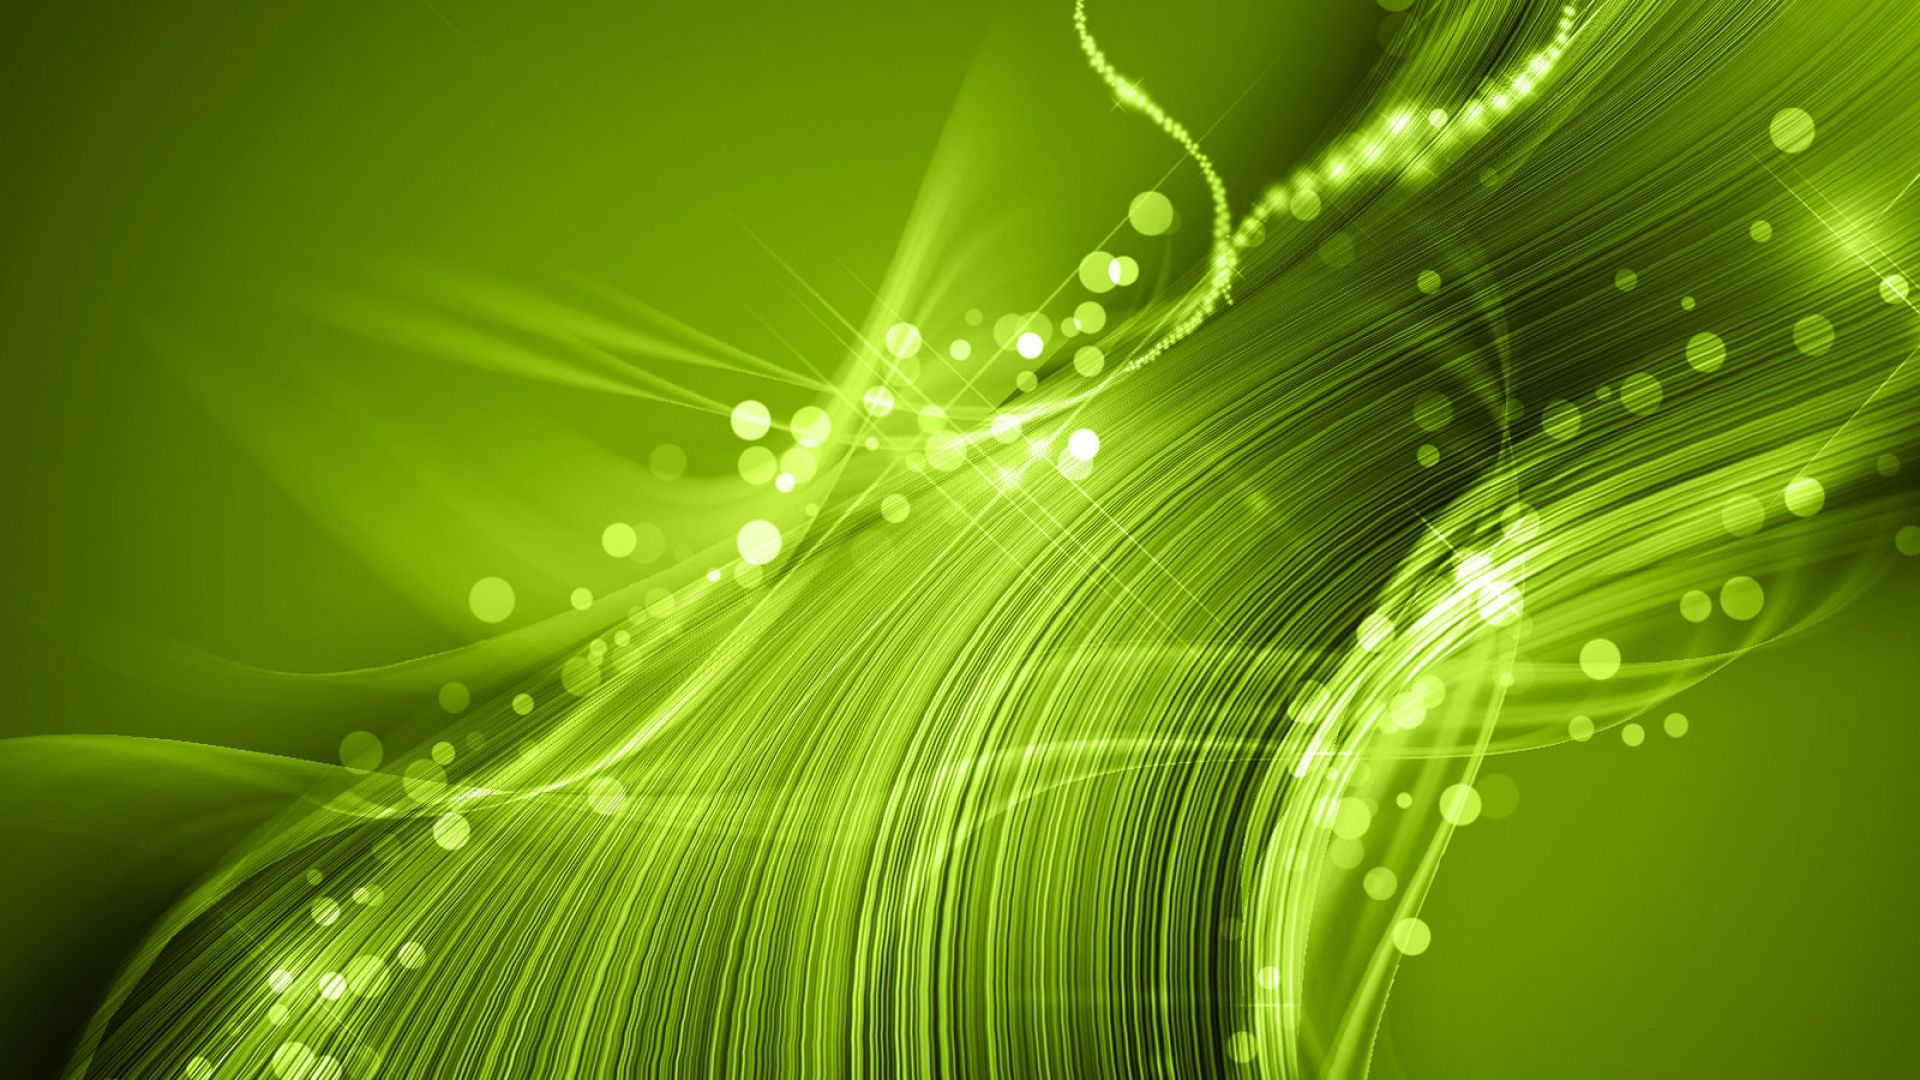 Cool Green free image